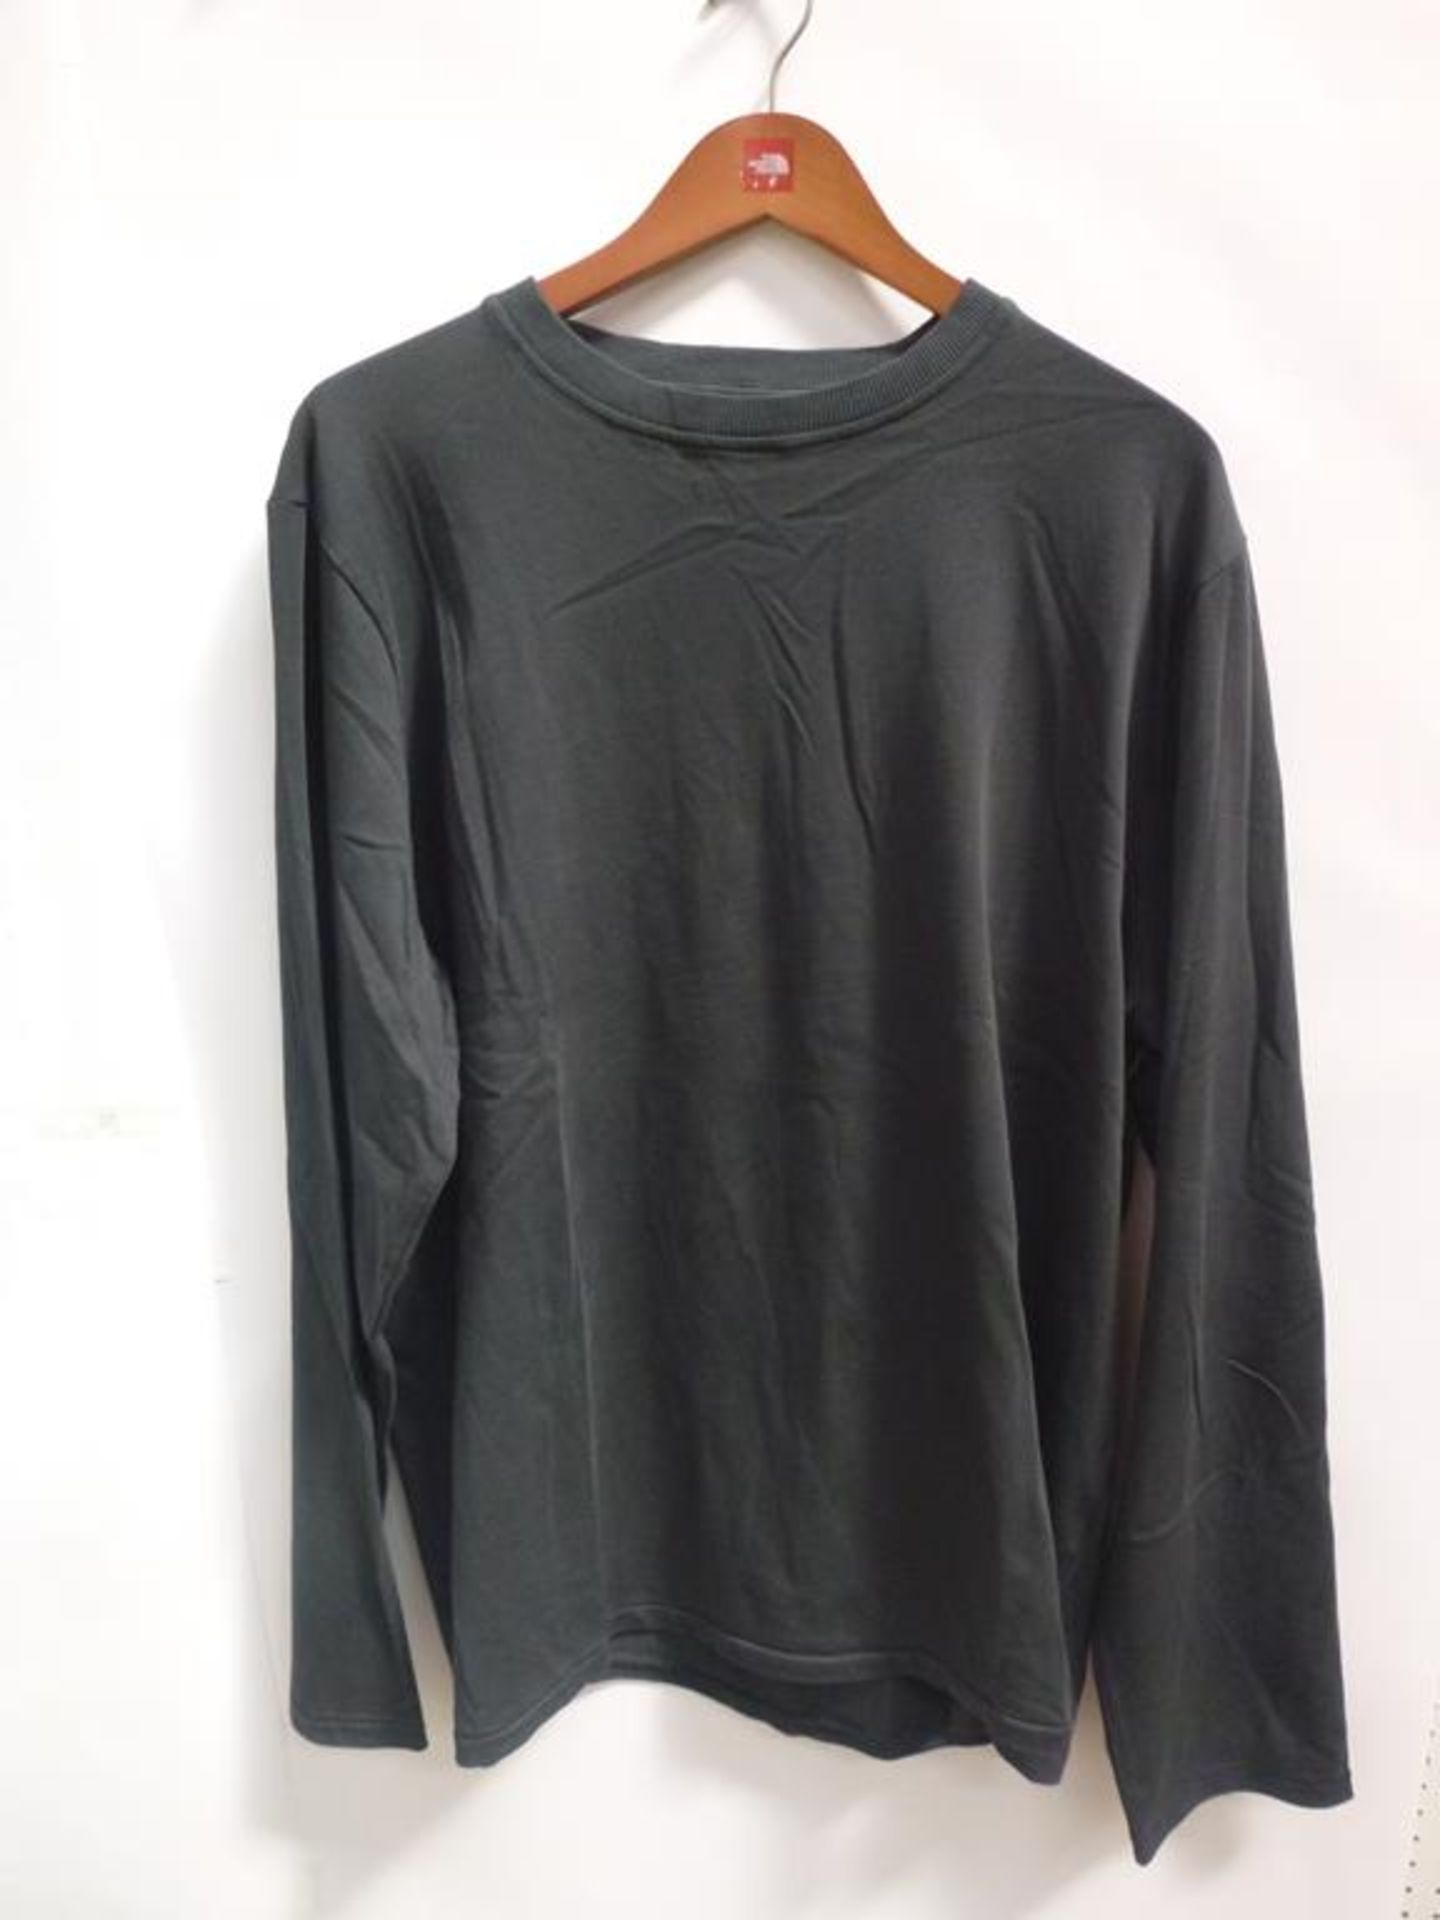 Lot 703 - A Long Sleeved White T-Shirt (M), a Lemaire Short Sleeved T-Shirt (?), 5 x Long Sleeved Black Tops (